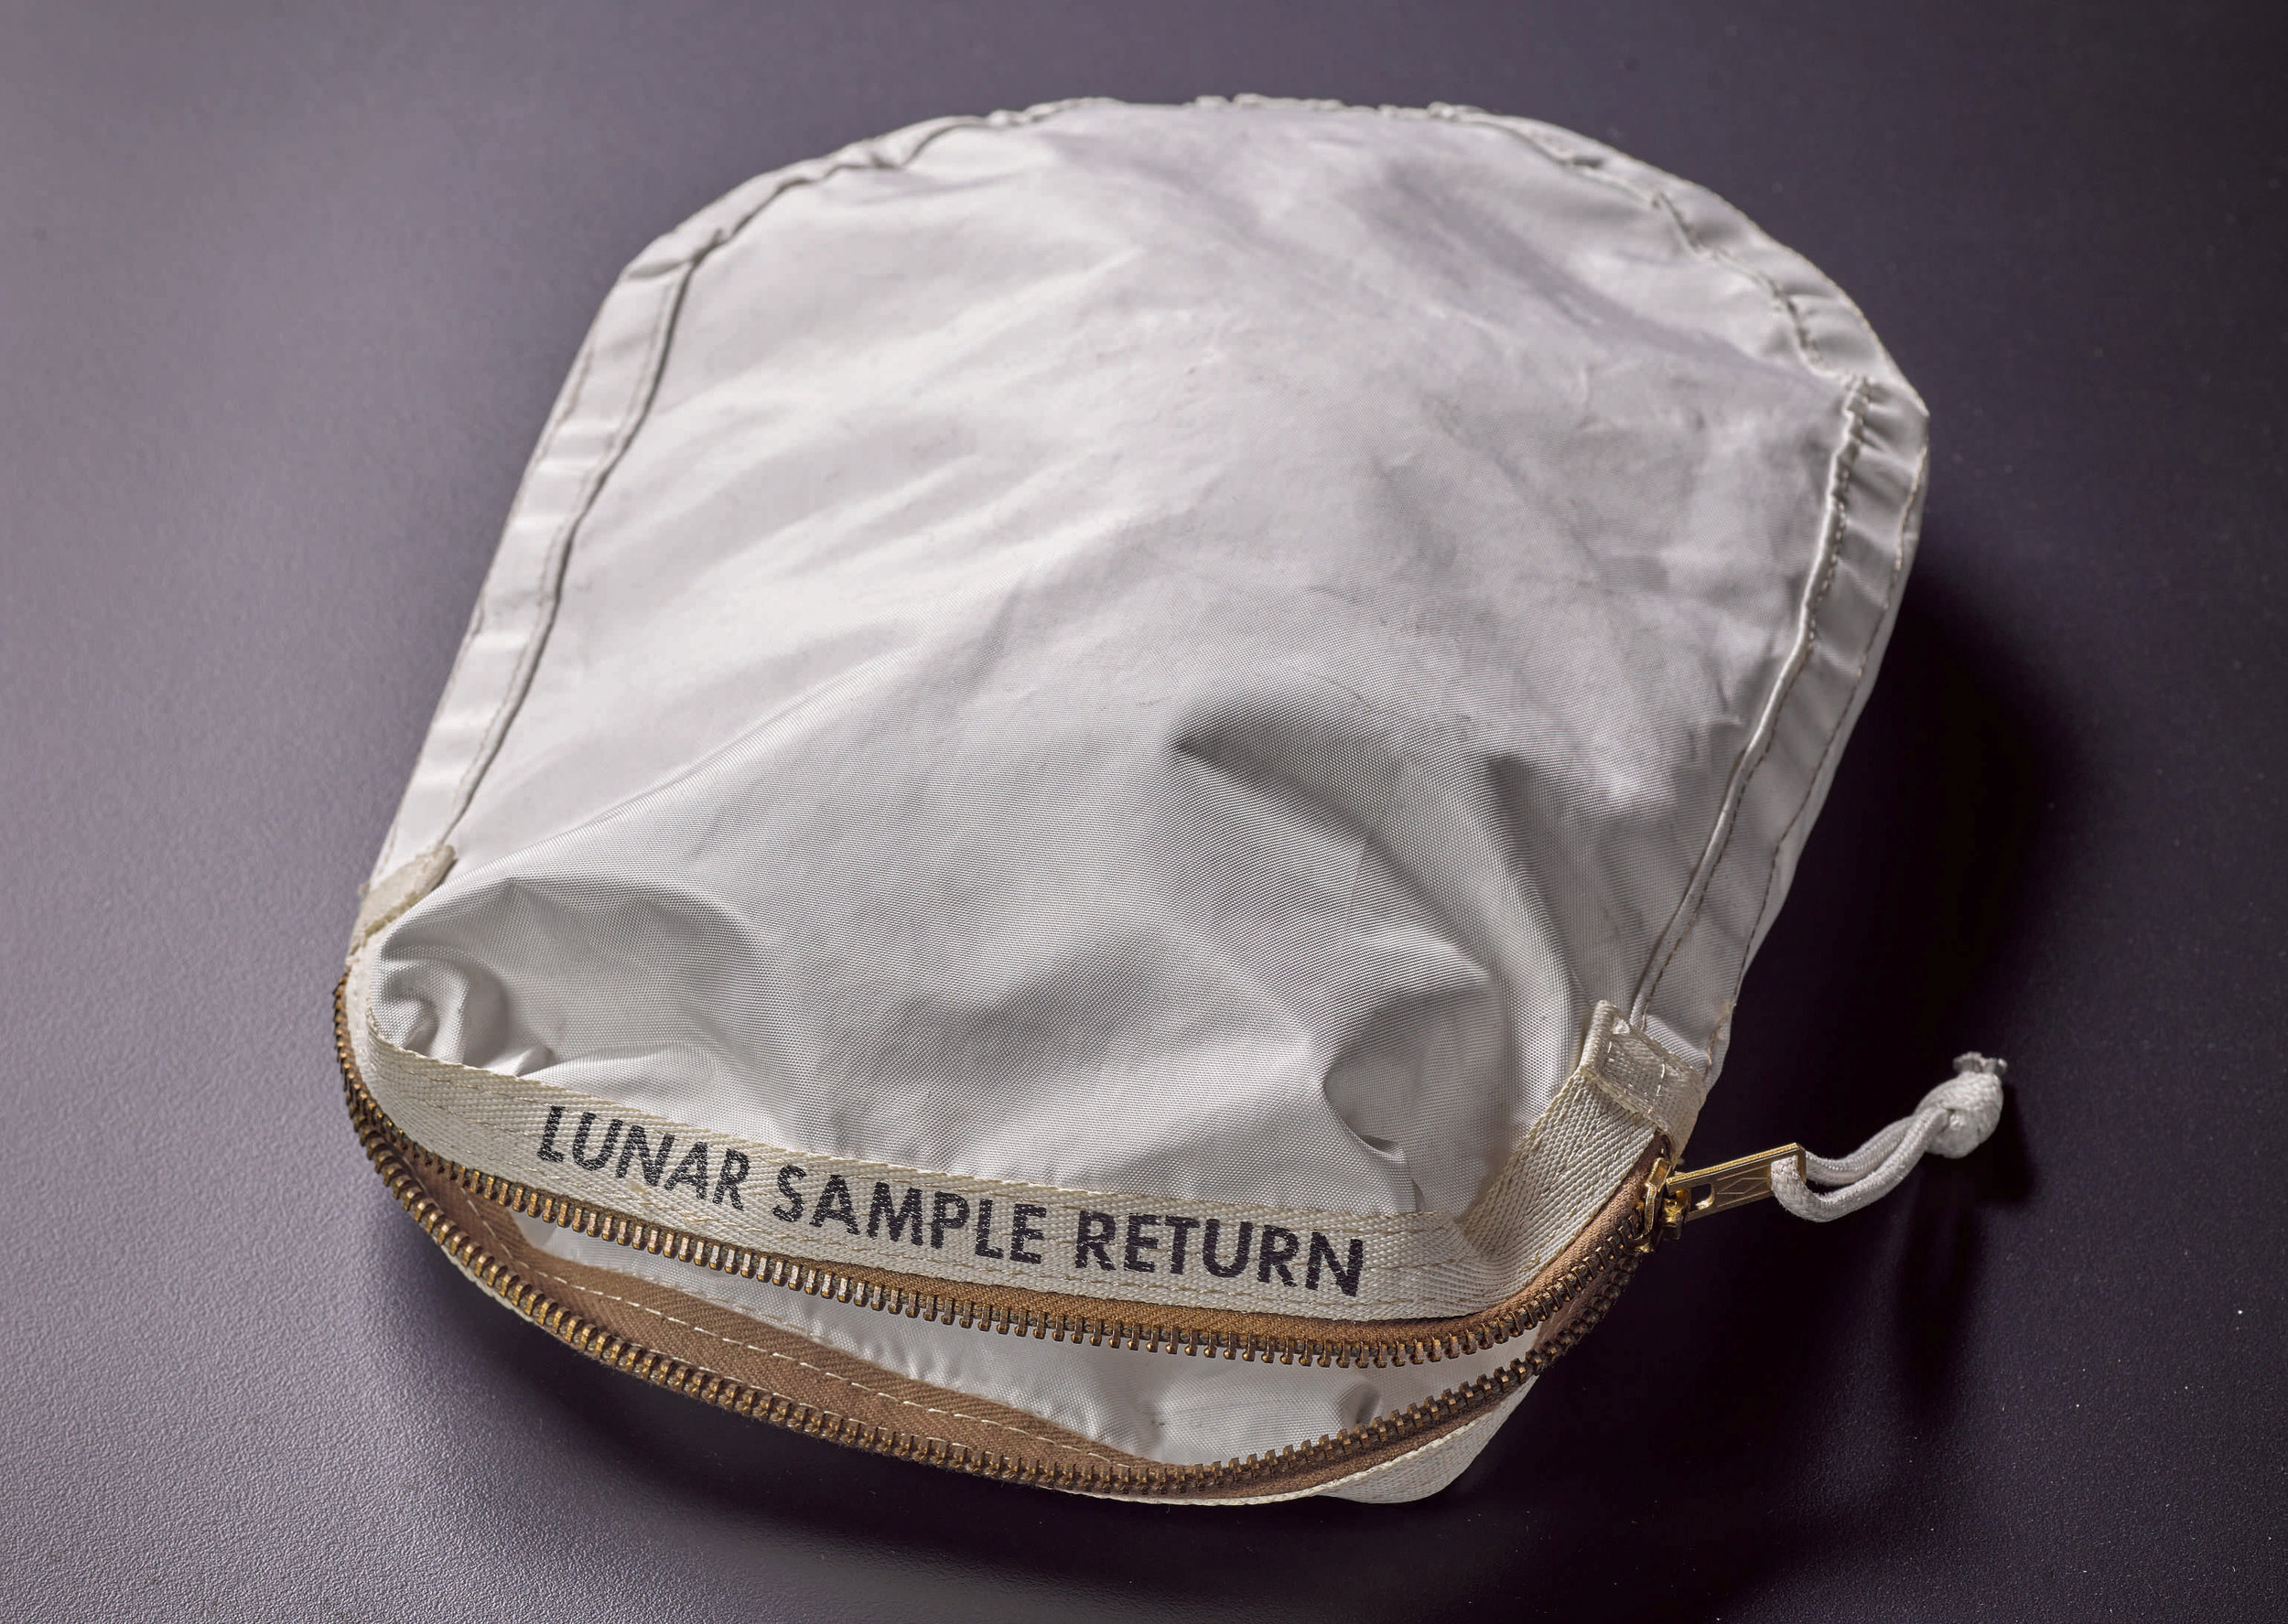 The original Lunar Sample Return bag used by Neil Armstrong on the Apollo 11 Moon Landing.